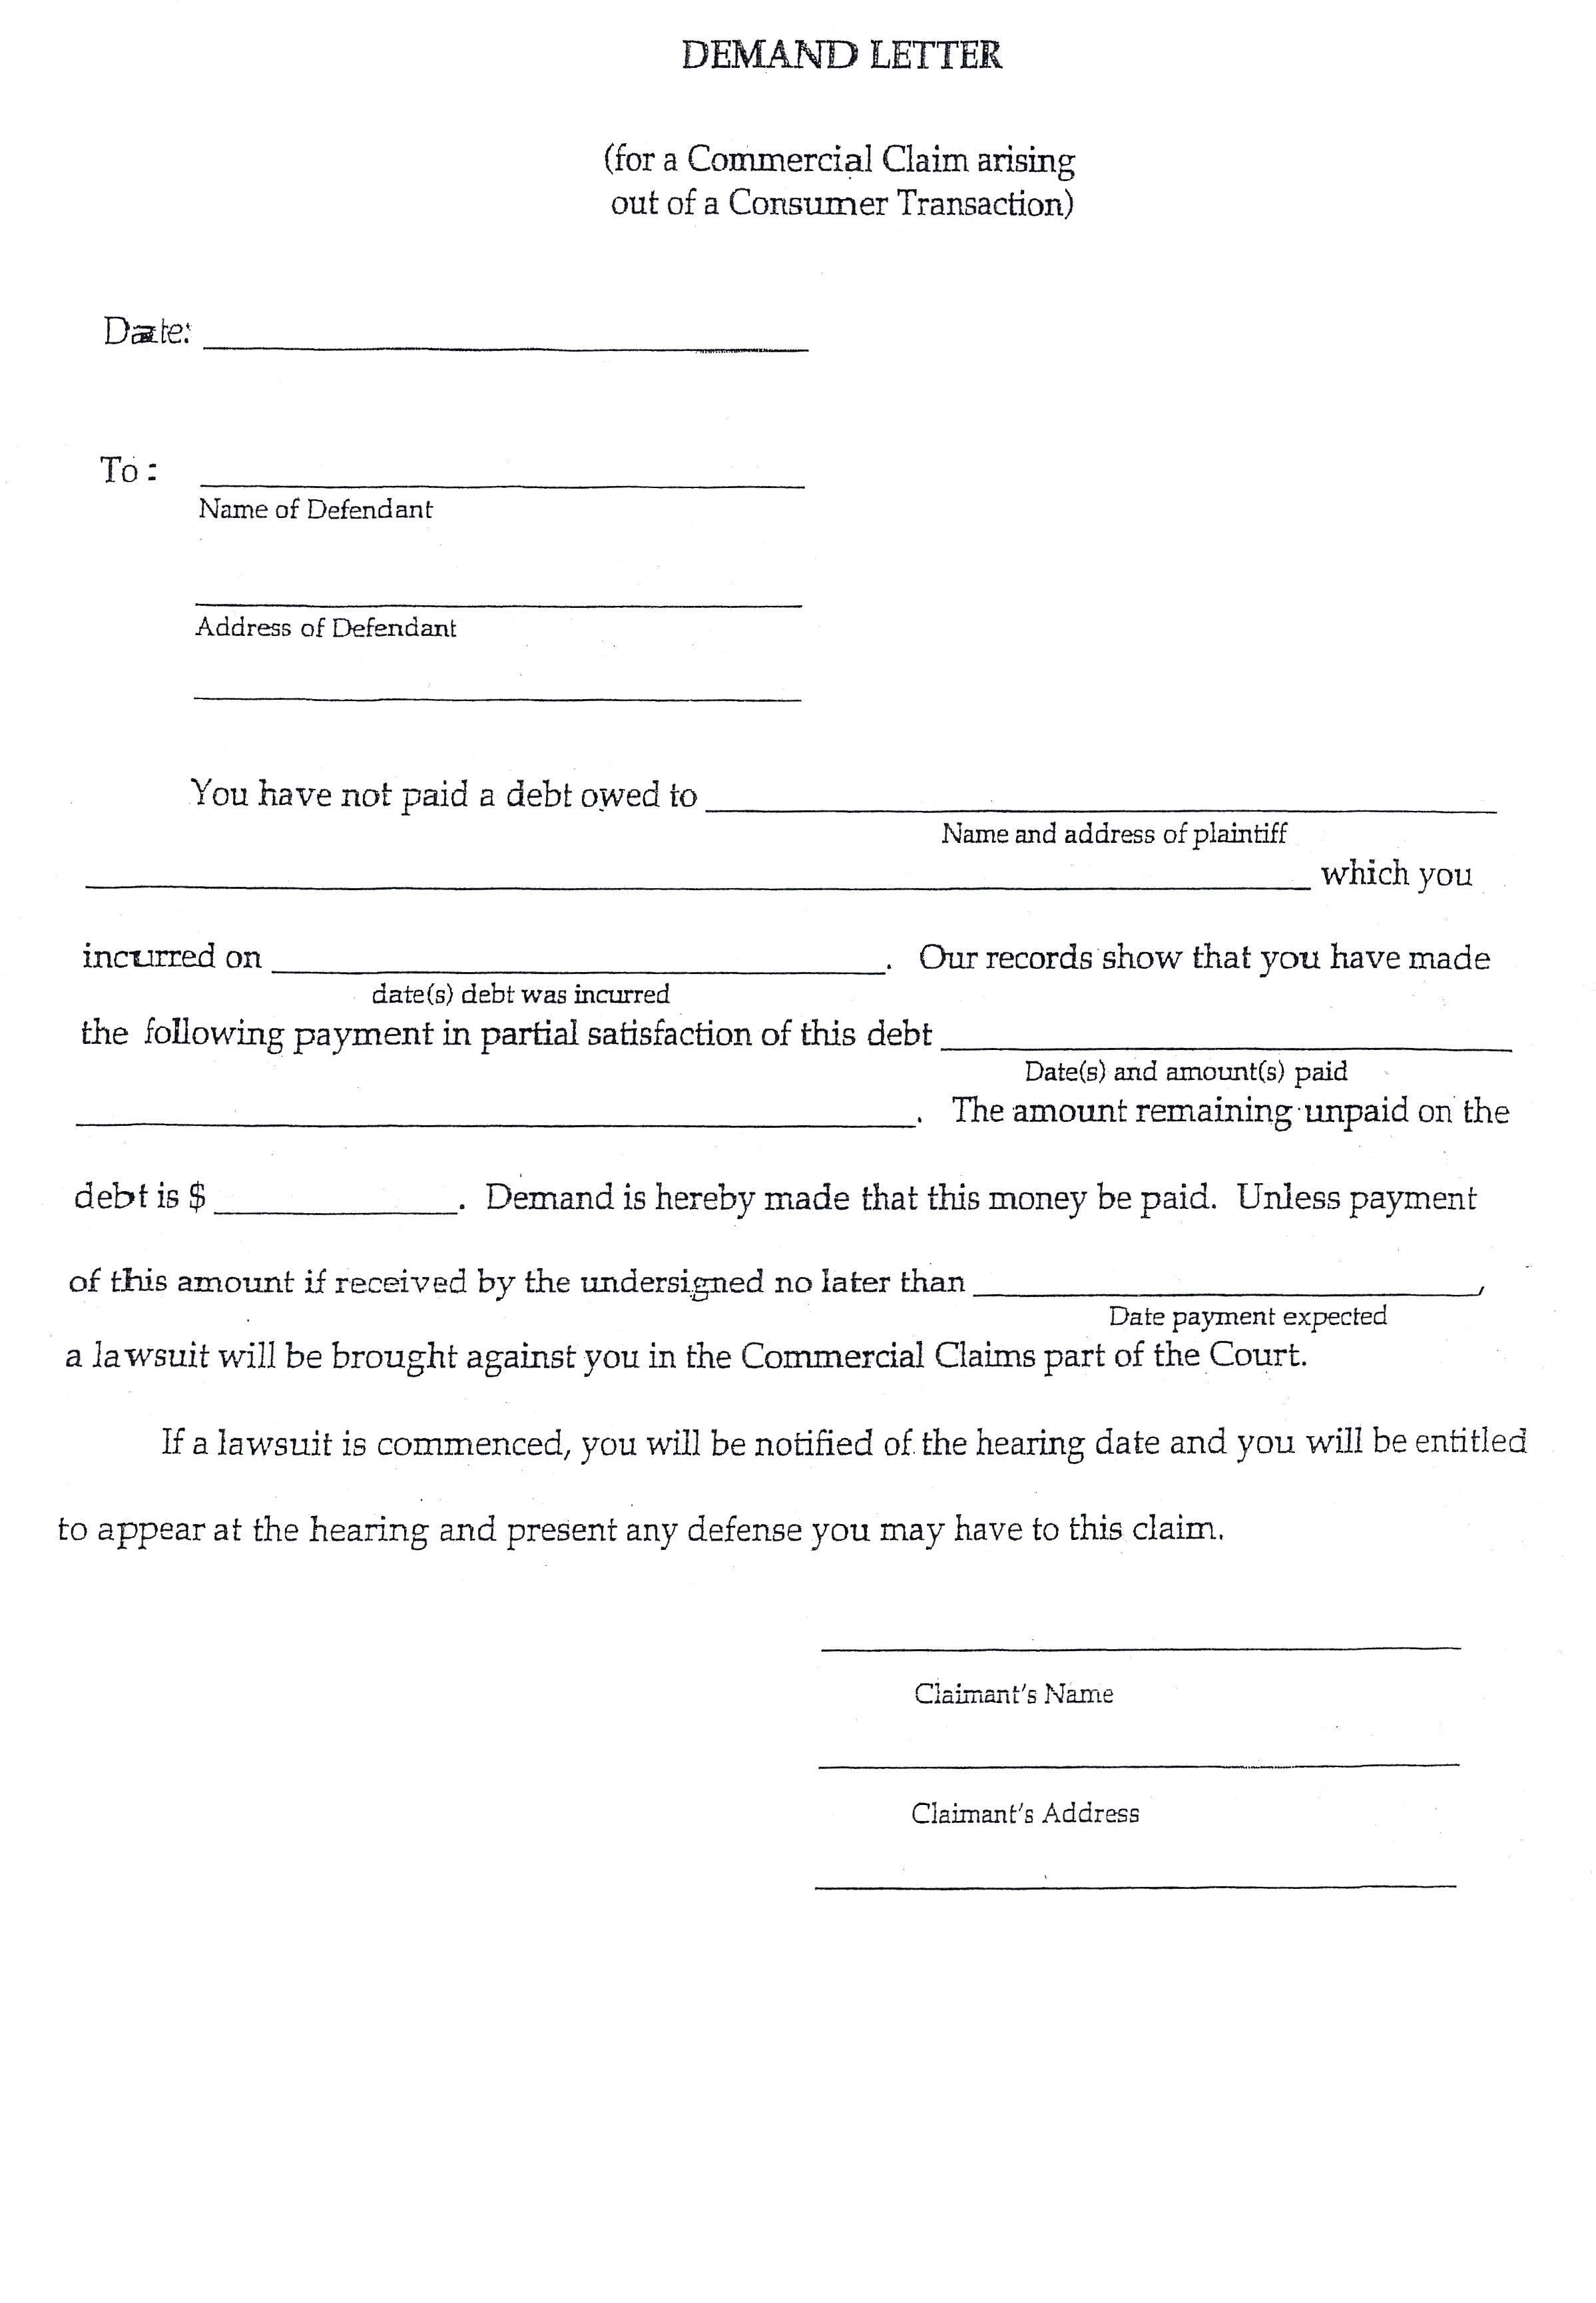 Small Claims Court Letter Of Demand Template - How to Write A Demand Letter for Small Claims Court Choice Image